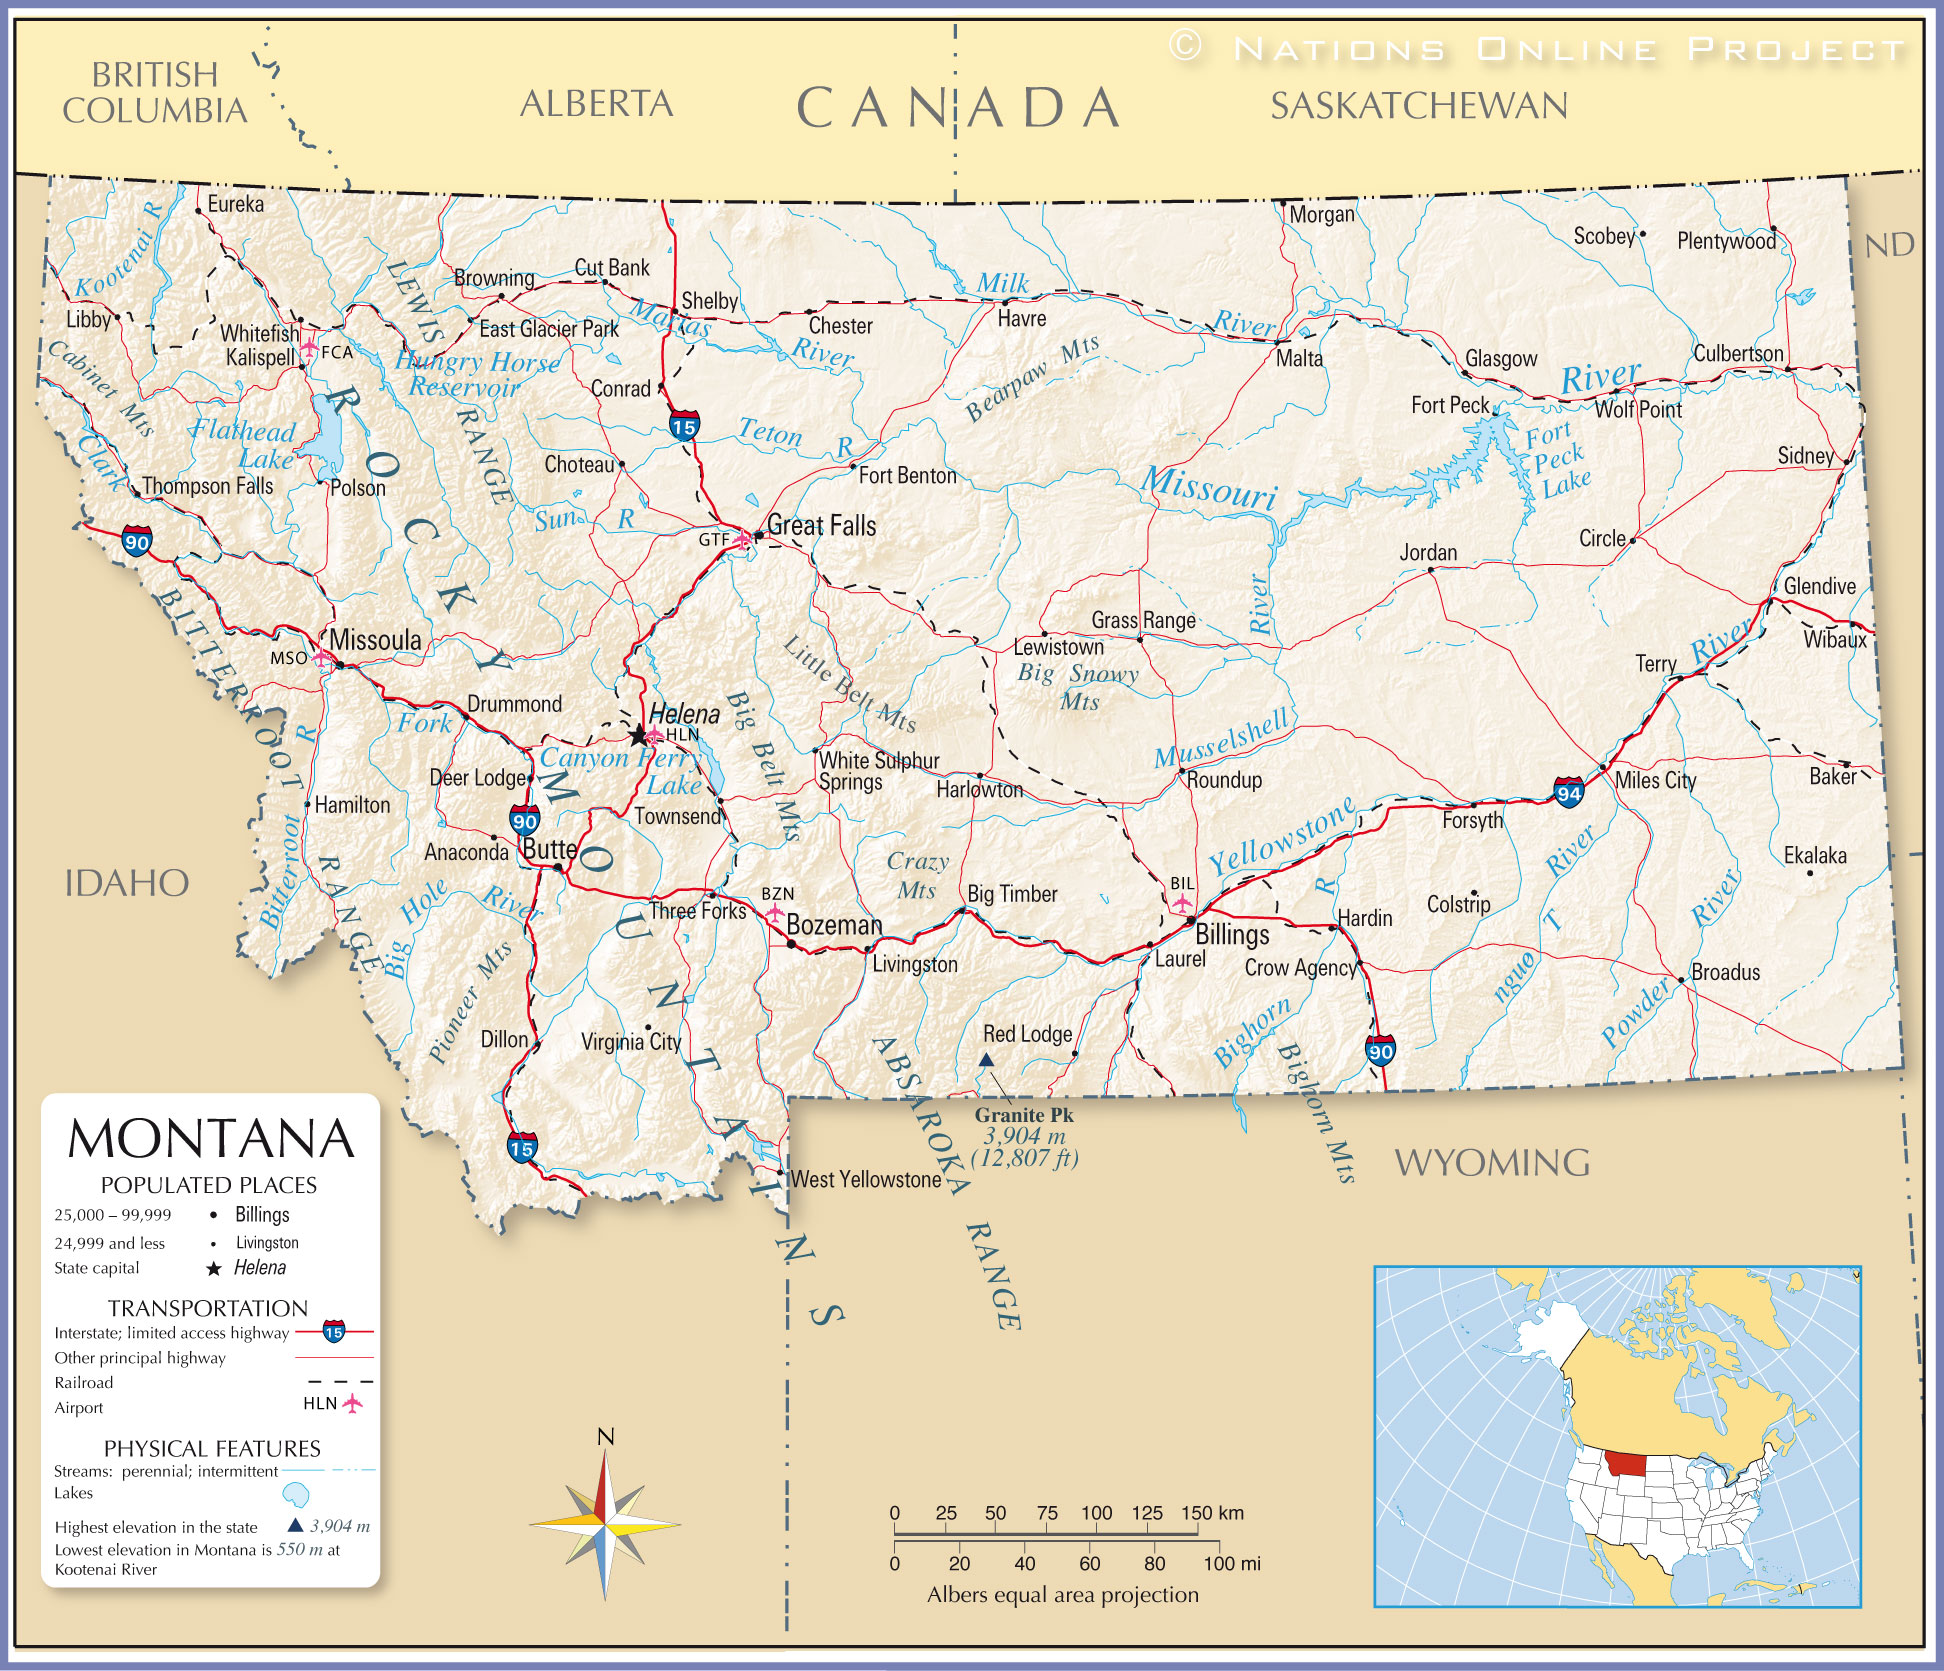 Reference Map Of Montana USA Nations Online Project - Montana cities map